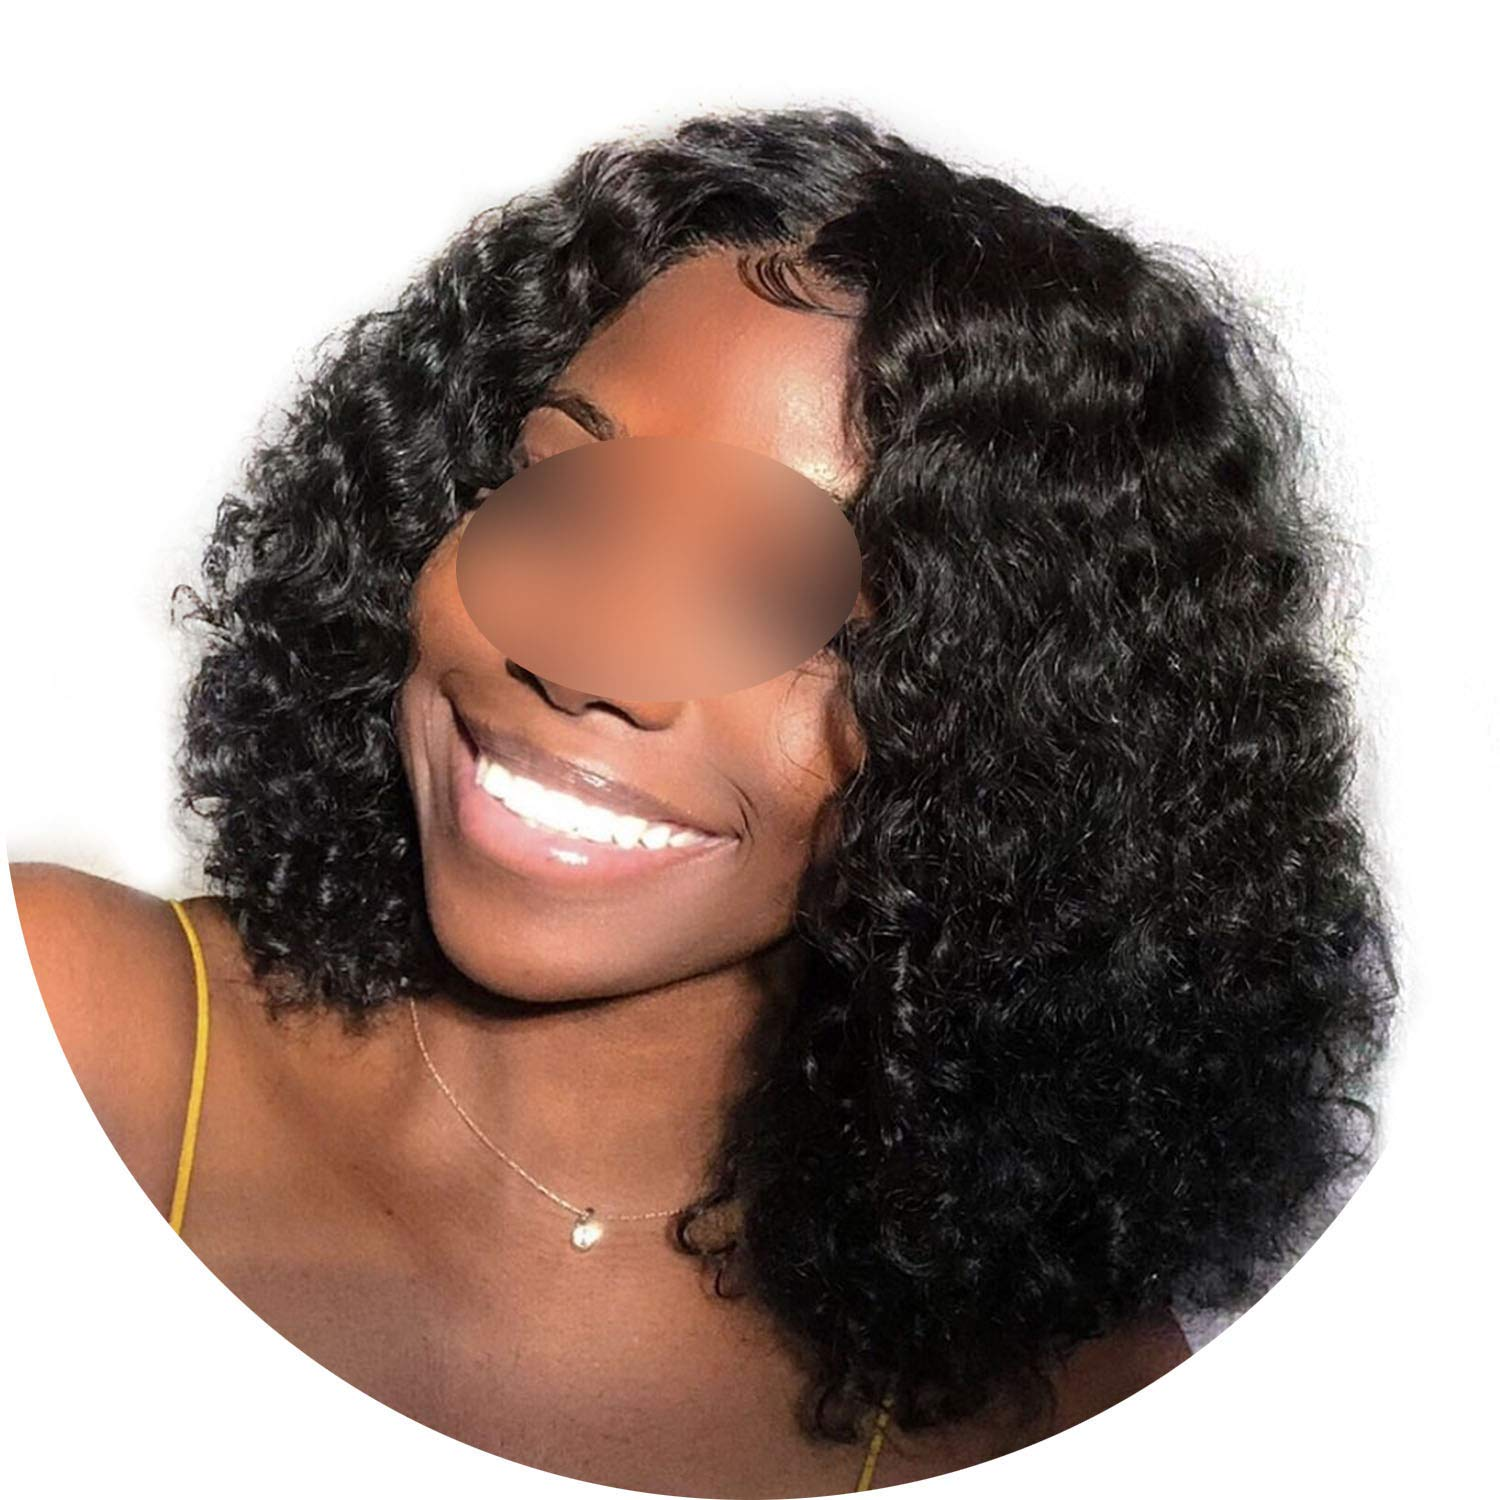 Curly Human Hair Wig Pre Plucked With Baby Hair Bob Wig Short Lace Front Human Hair Wigs For Women 180% Density,10Inches,180%